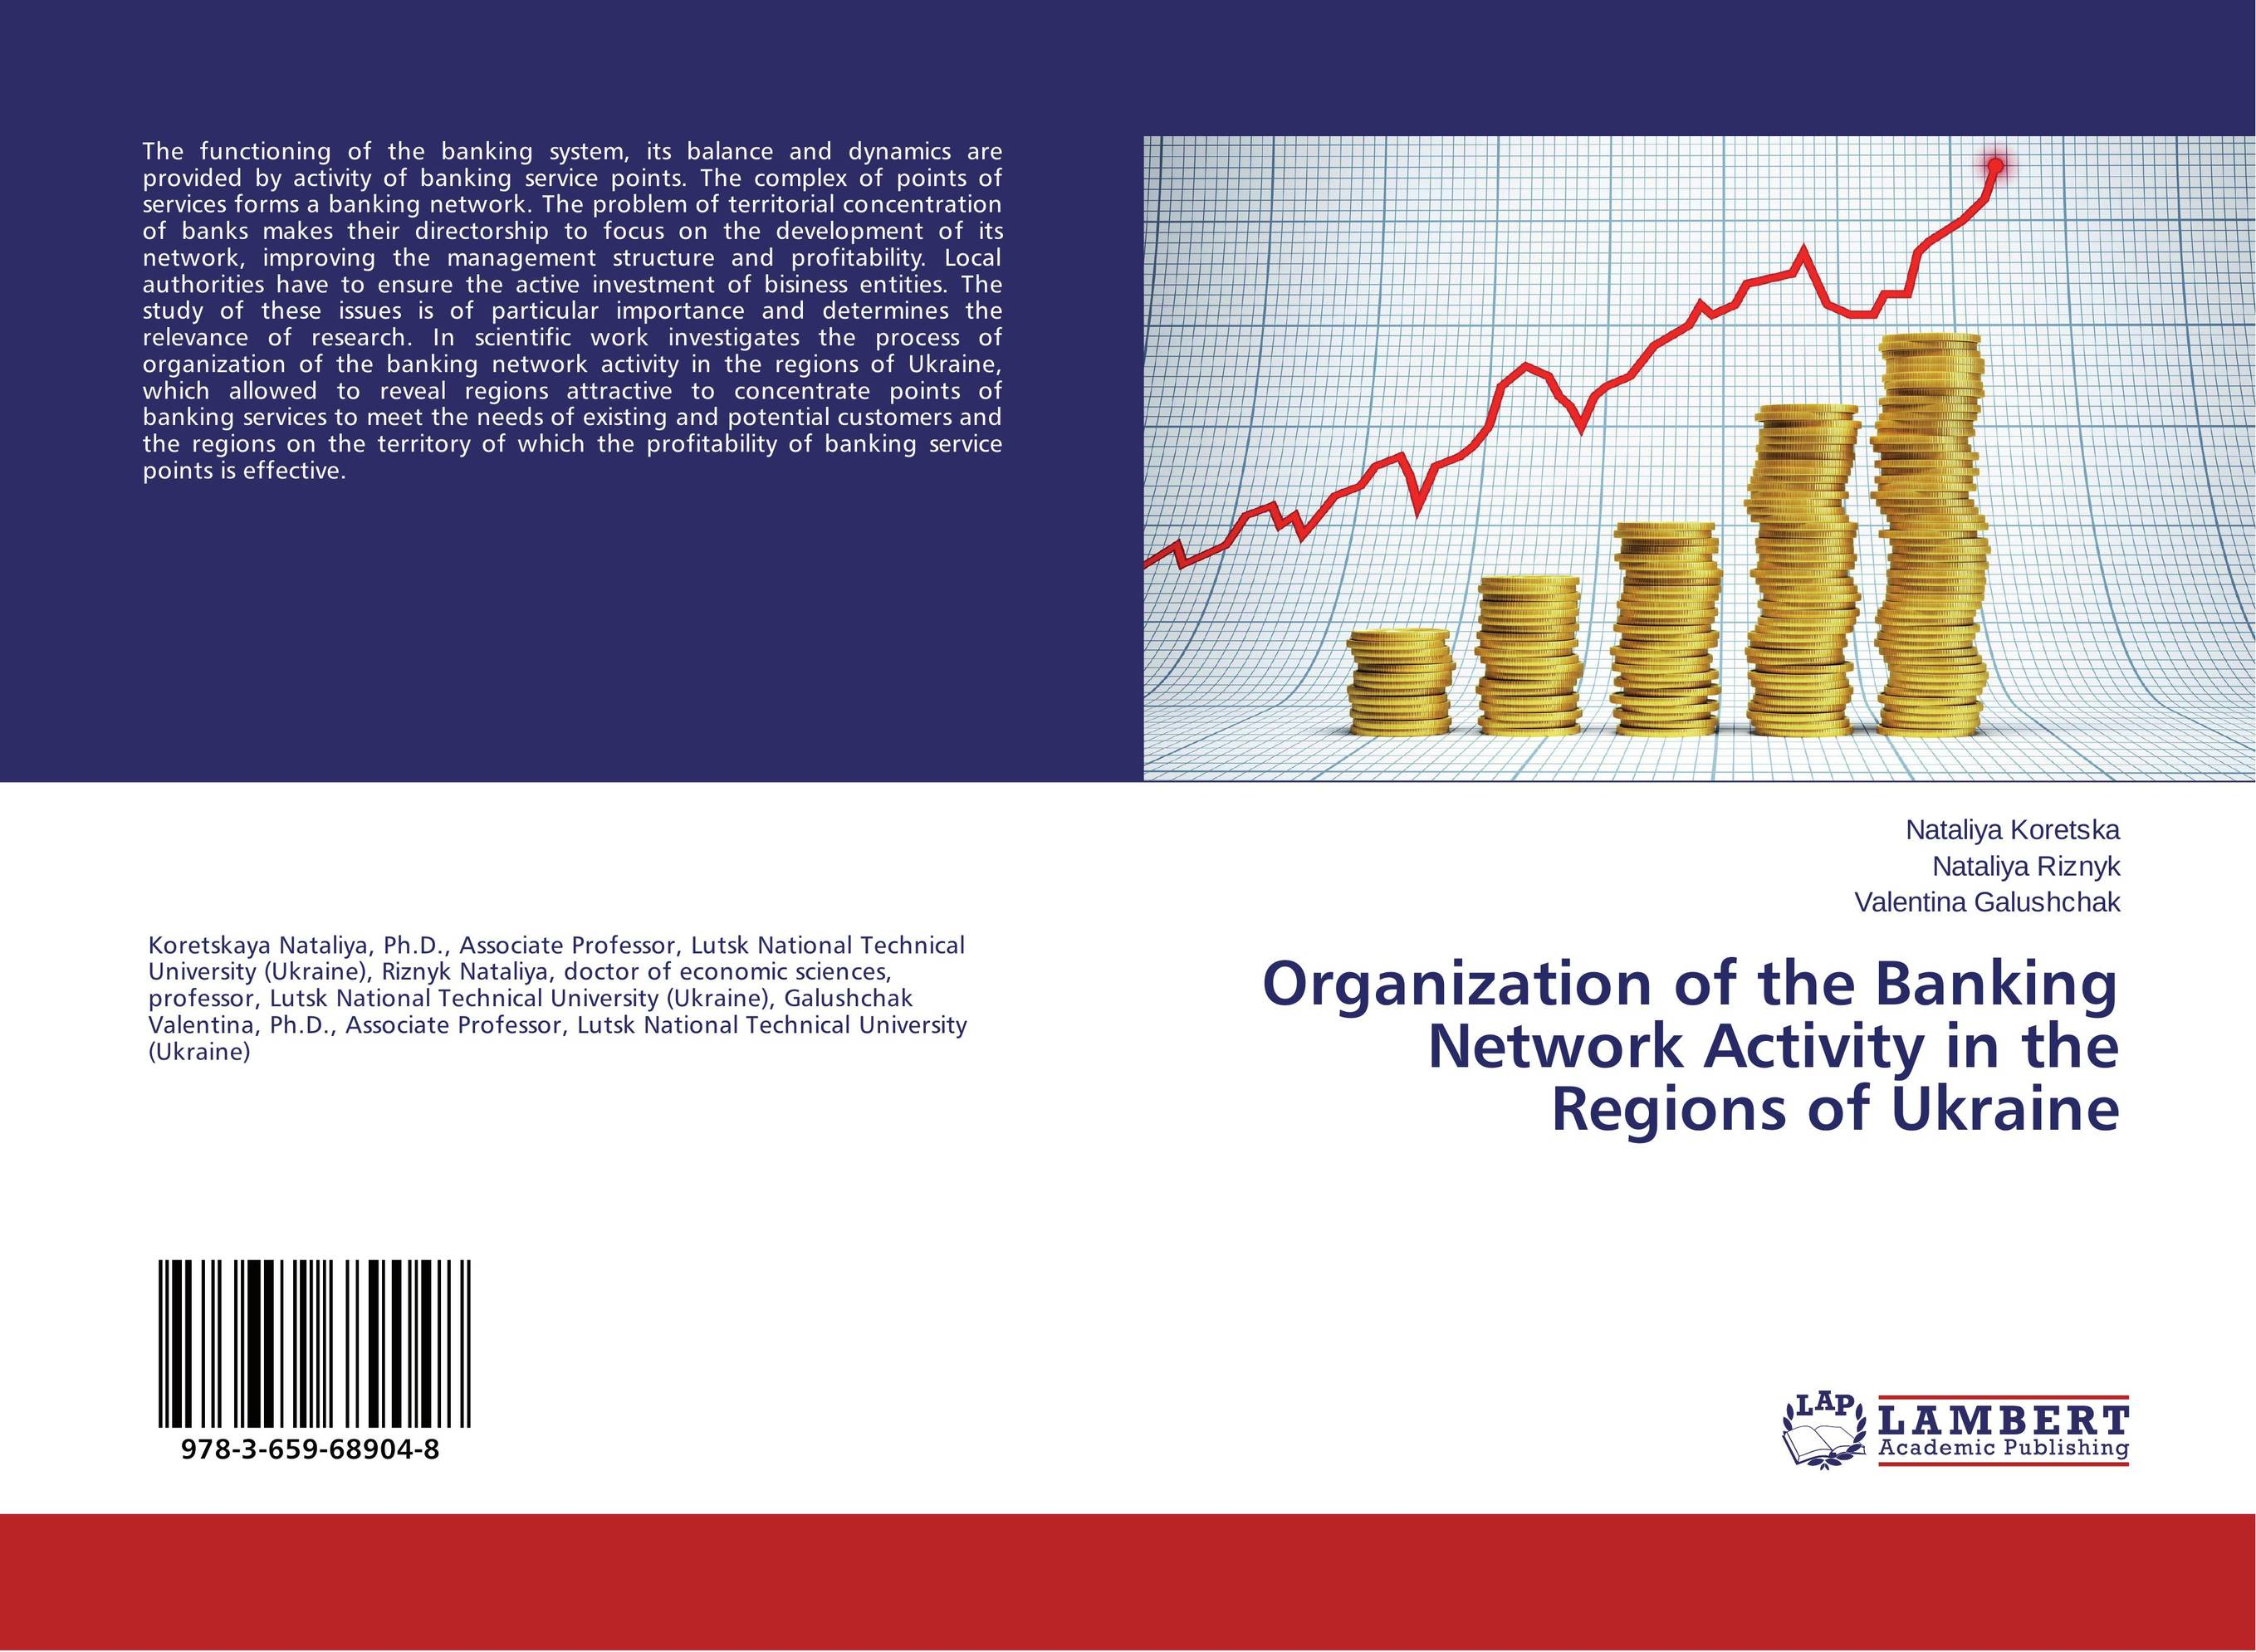 Organization of the Banking Network Activity in the Regions of Ukraine merchant of venice the